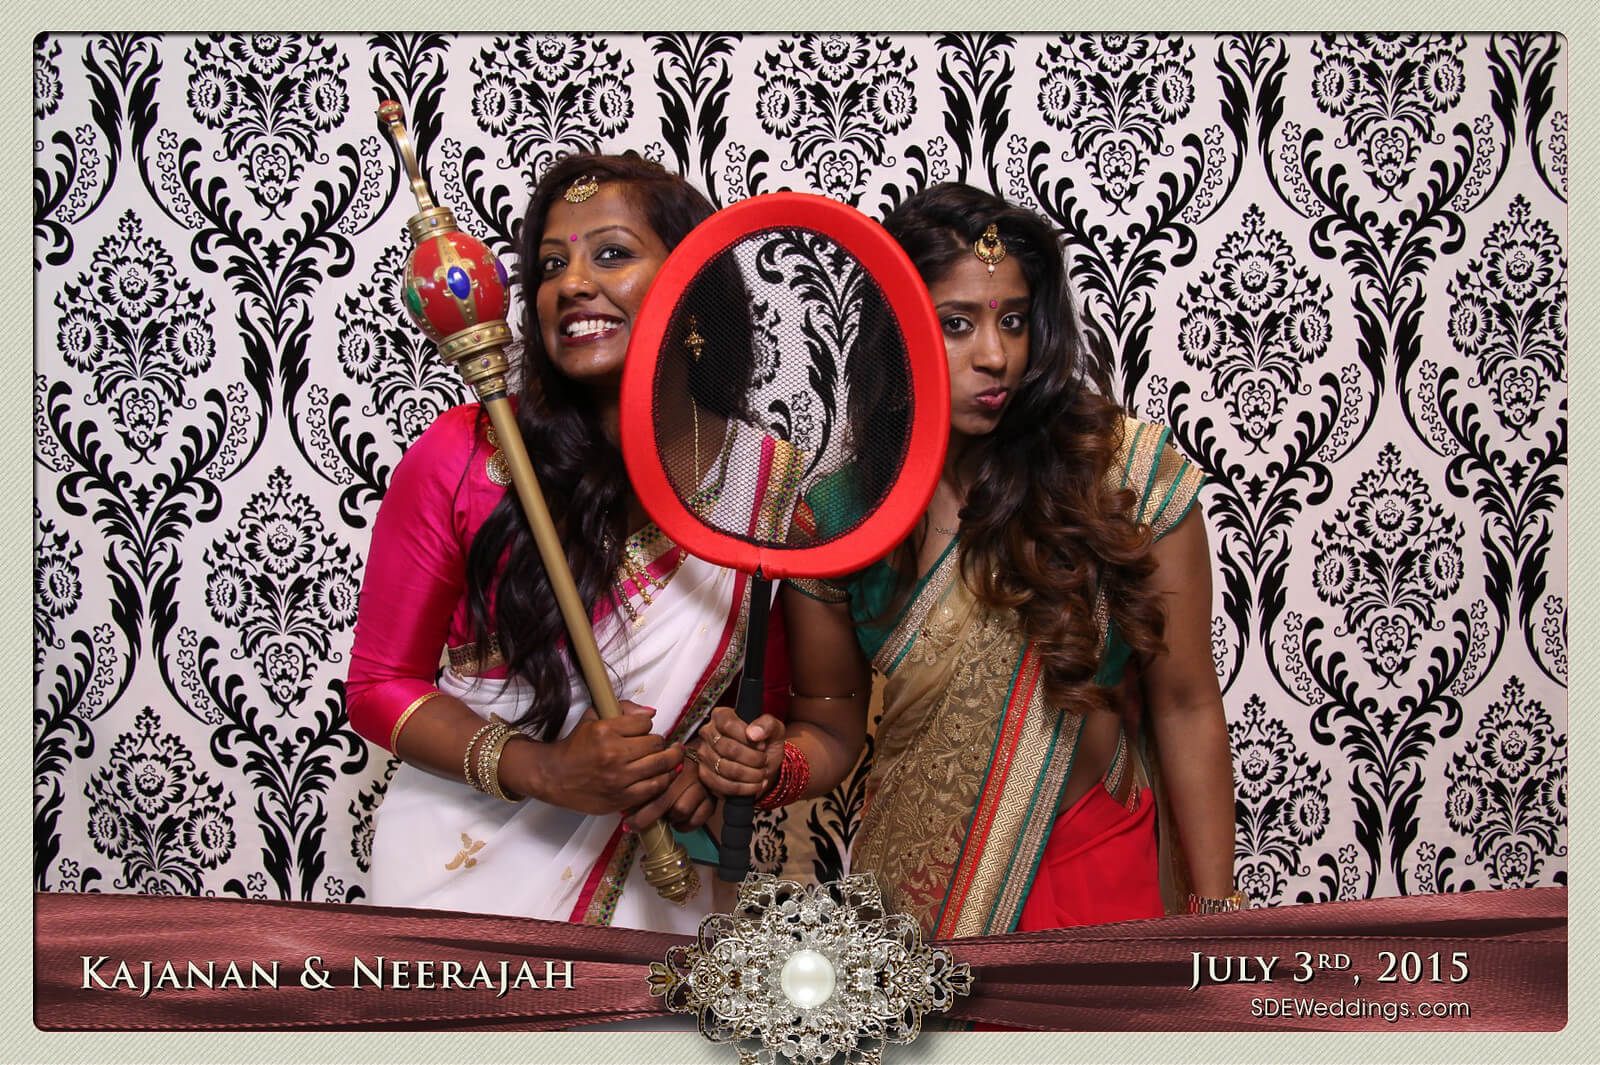 Toronto Scarborough Convention Centre Hindu Wedding Photo Booth Rental 8